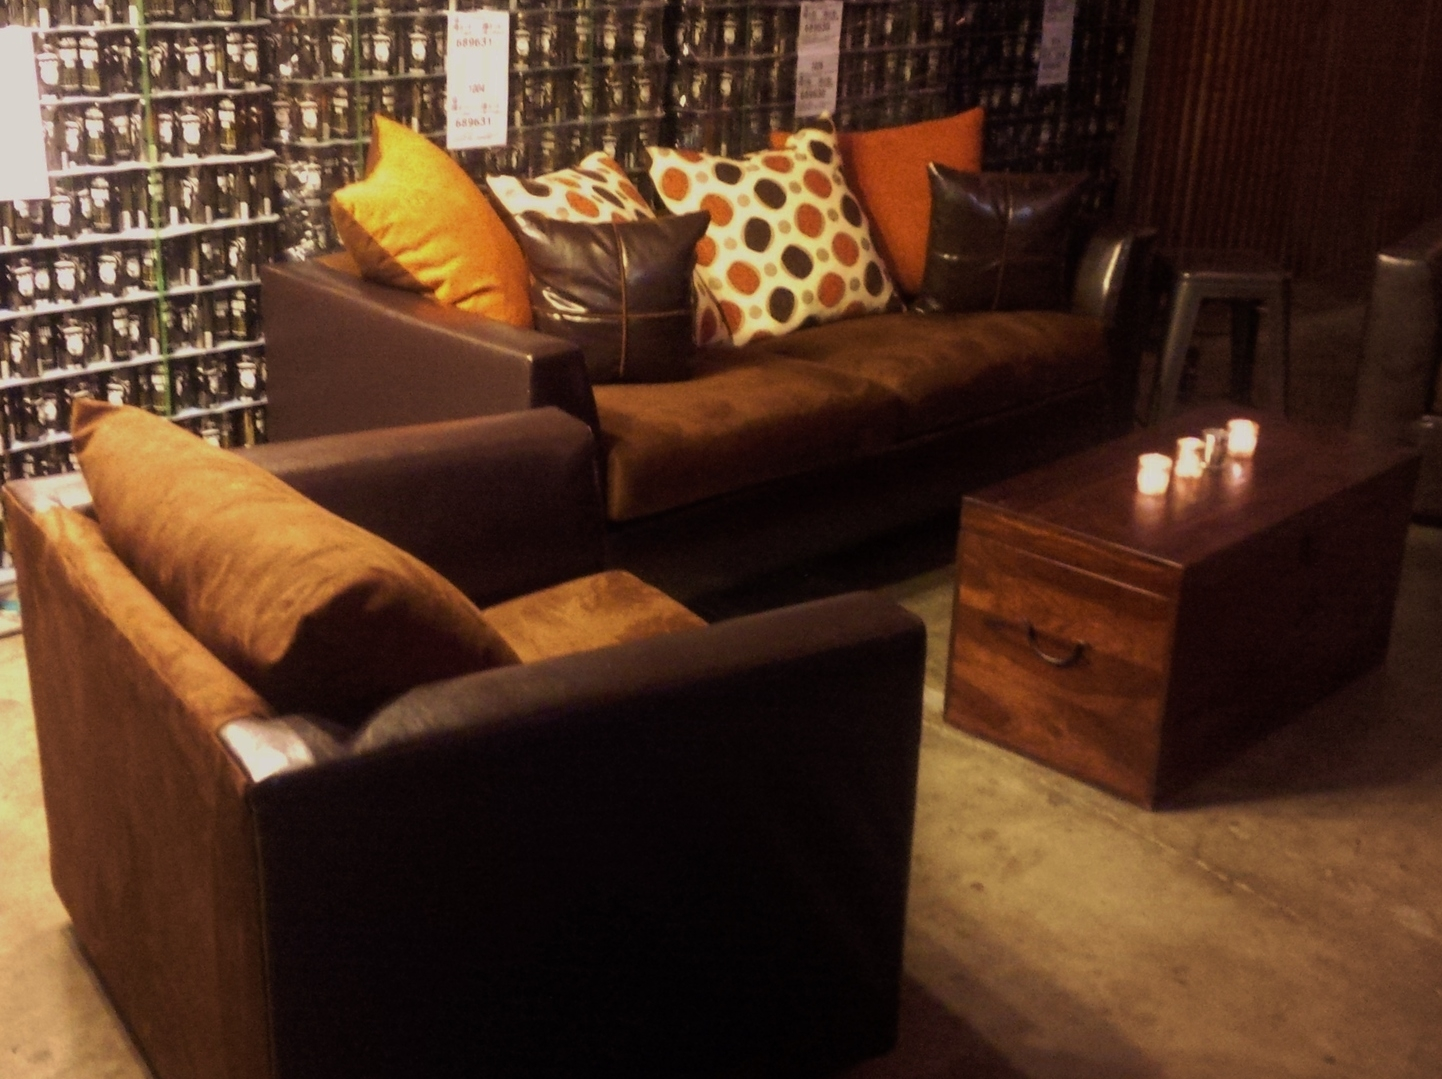 contemporary sofa with wood trim sleeper futon couch llc- lounge furniture rental for your event.couch llc